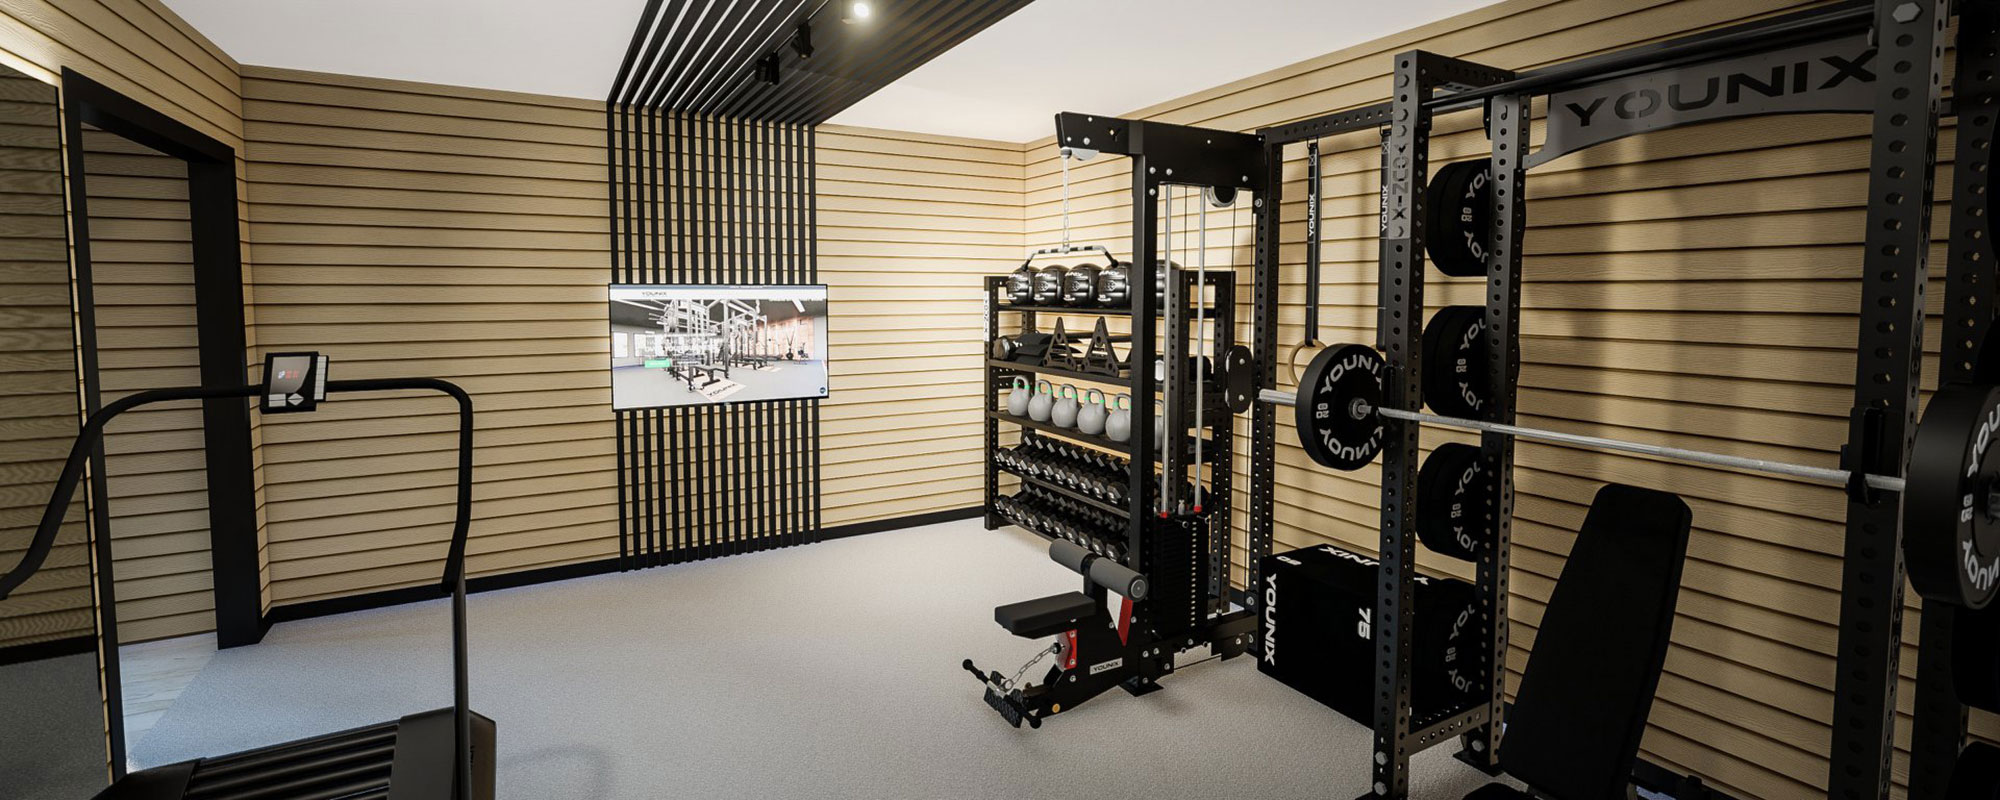 Weights and fitness machines in gymnasium